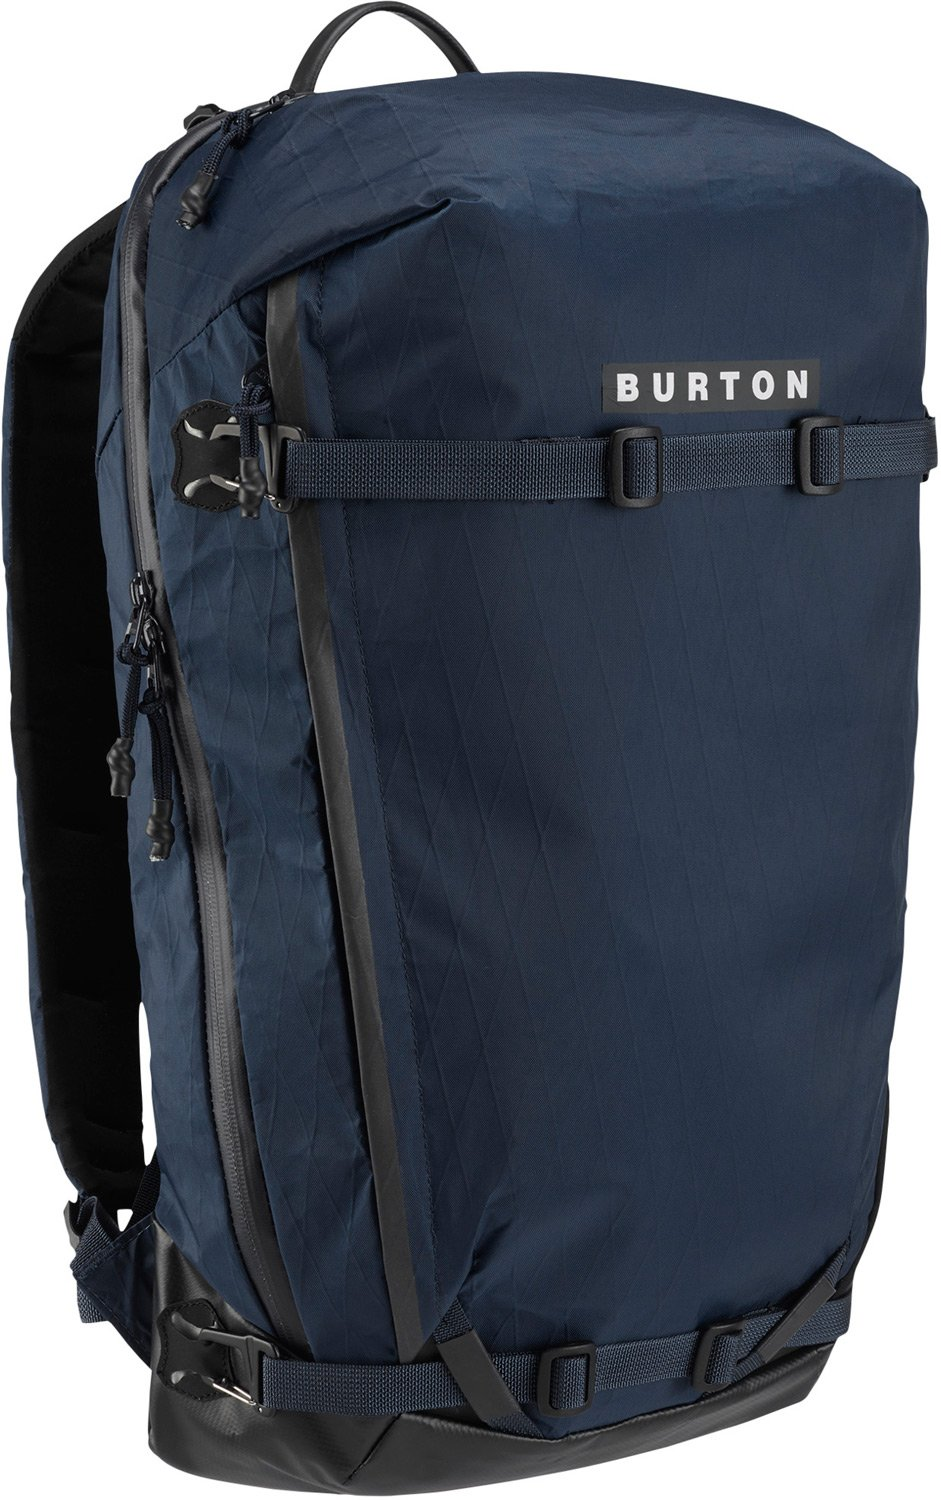 Burton 167001 Gorge Backpack, One Size, Eclipse X-Pac